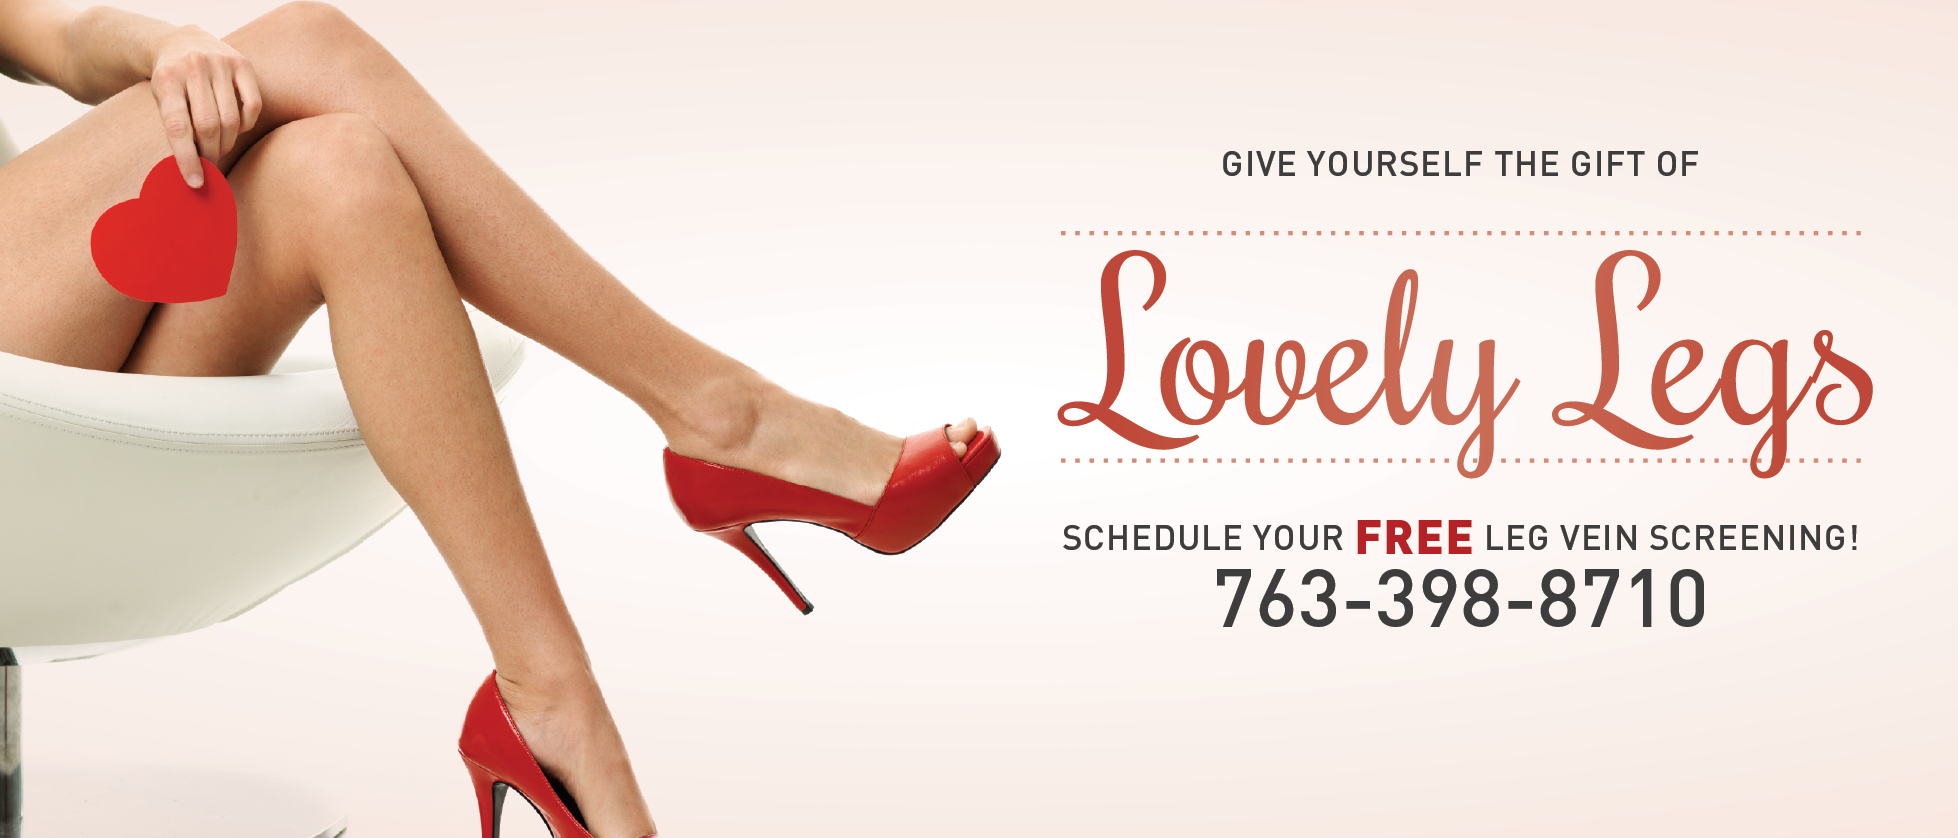 Schedule your free leg vein screening